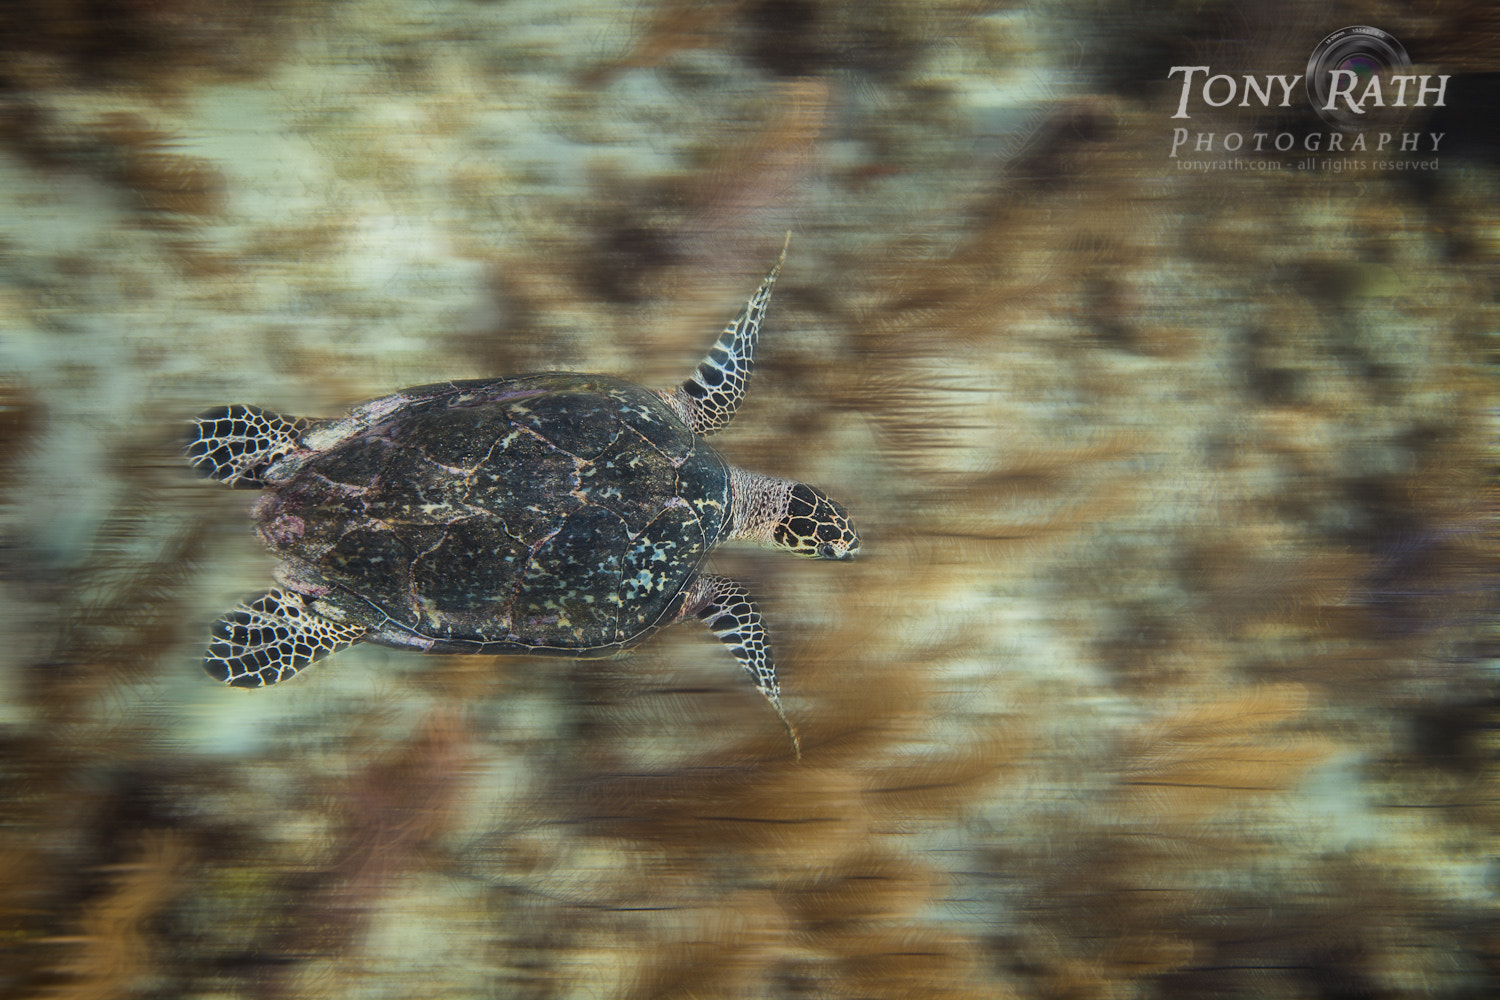 Photograph Hawksbill Turtle over Gorgonian Forest by Tony Rath on 500px